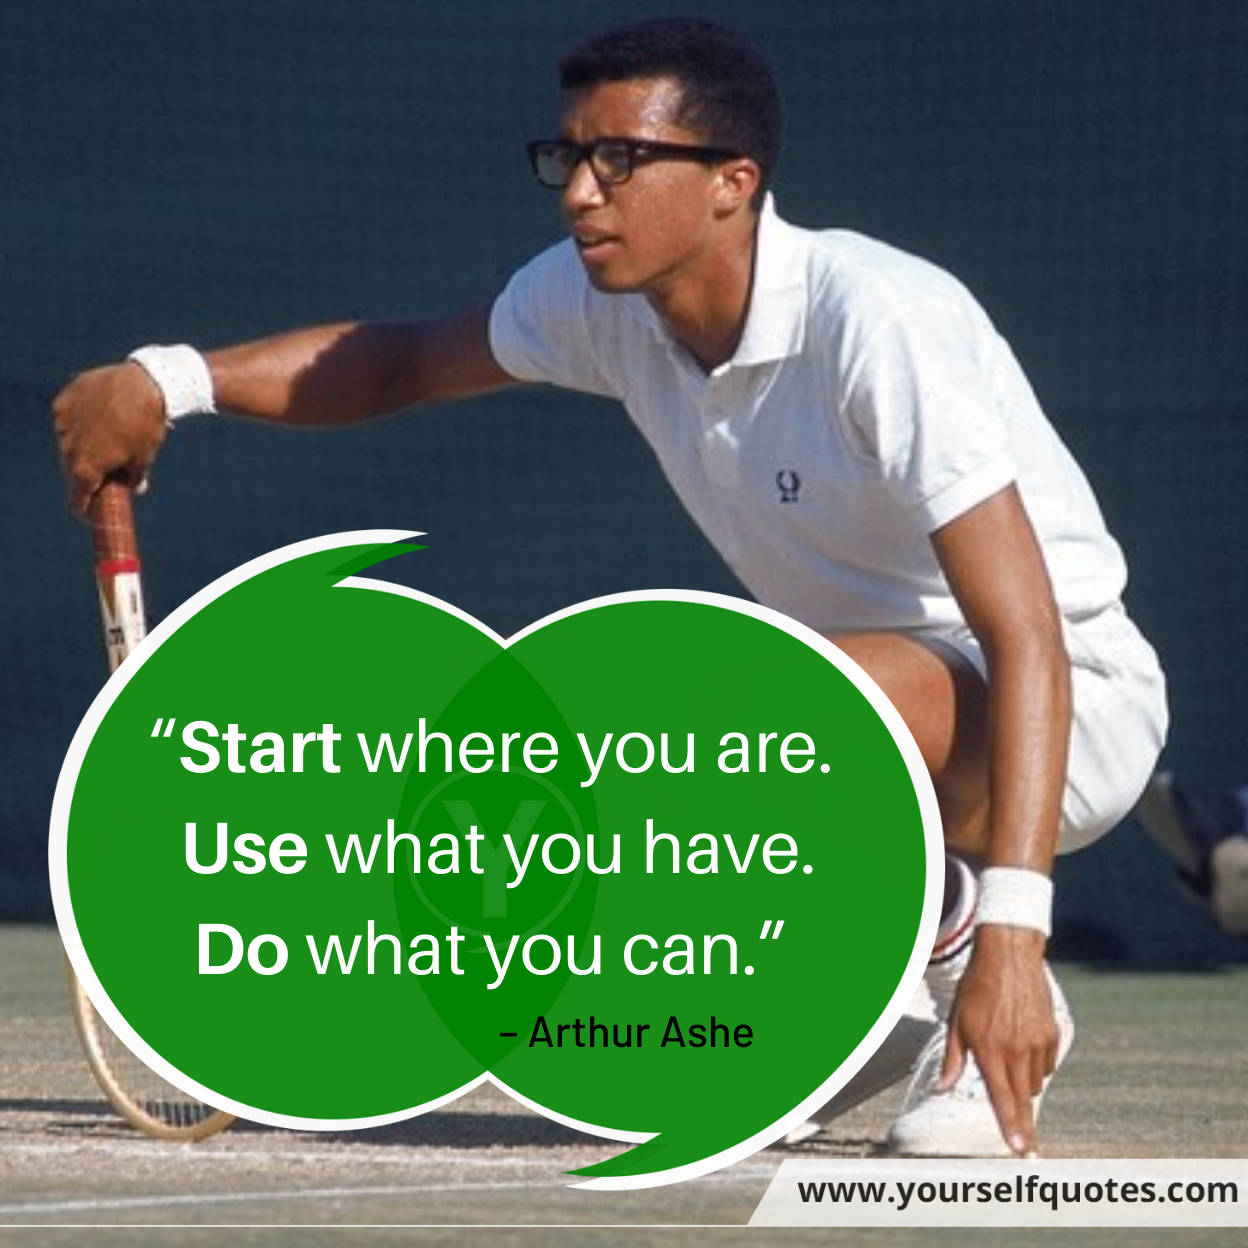 Motivational Quotes by Arthur Ashe